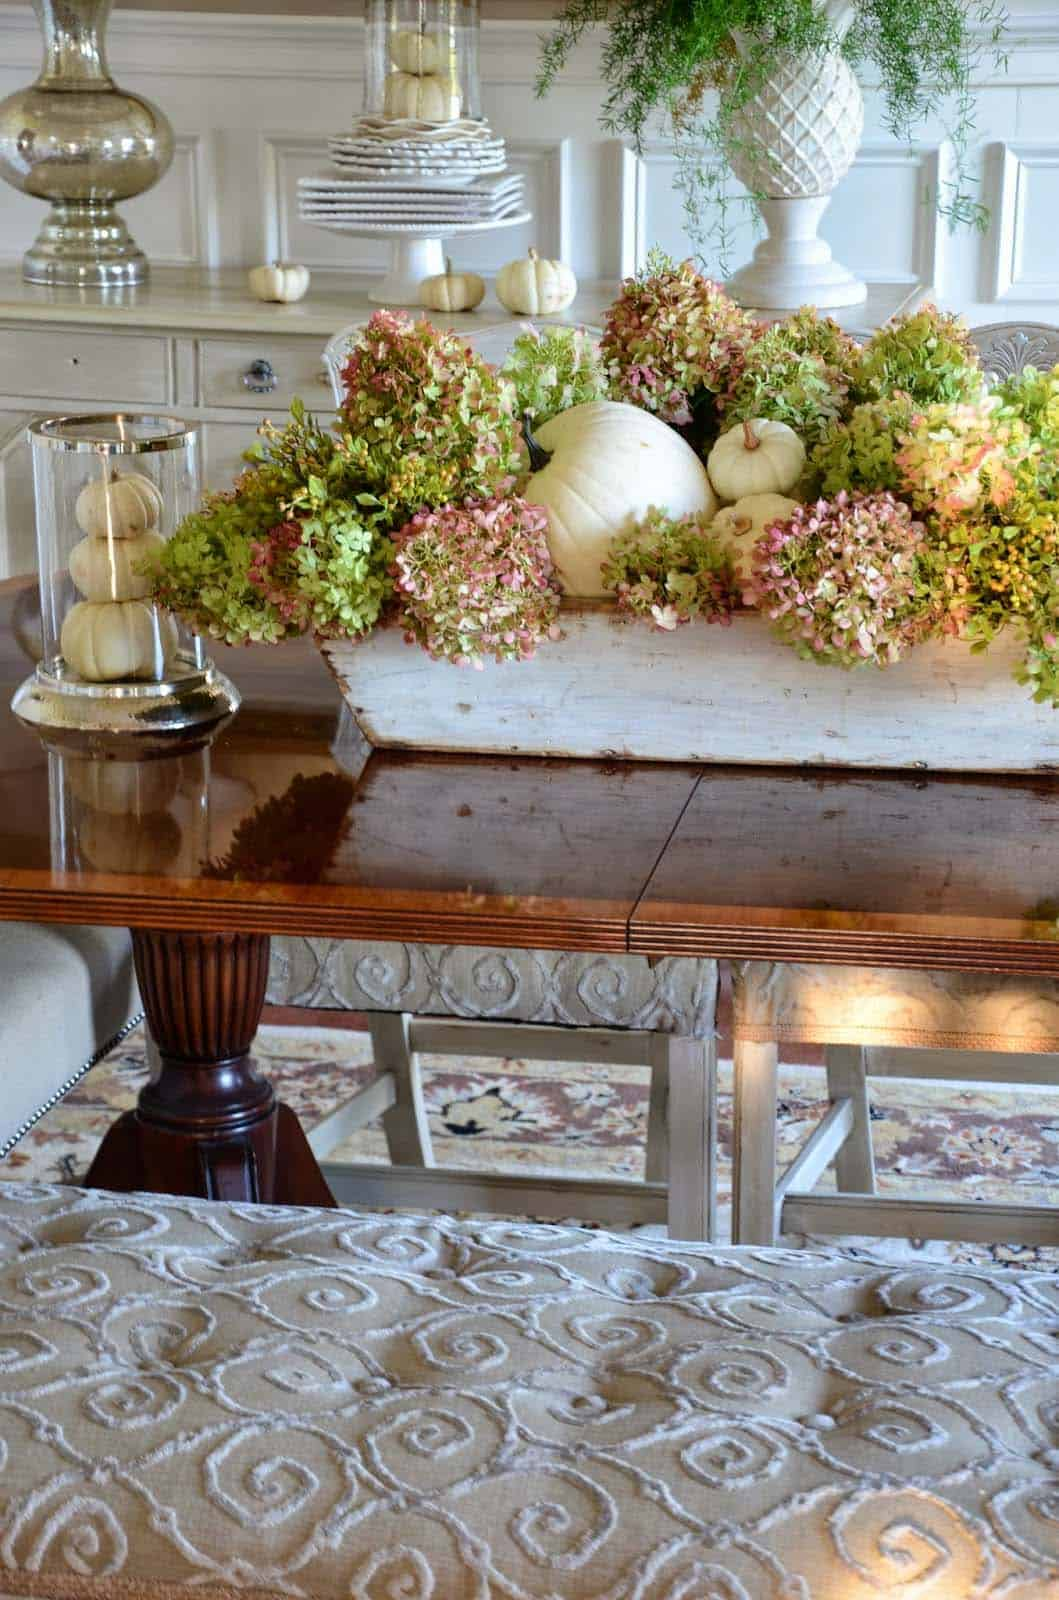 Amazing-Fall-Table-Decor-Ideas-For-Decorating-15-1-Kindesign